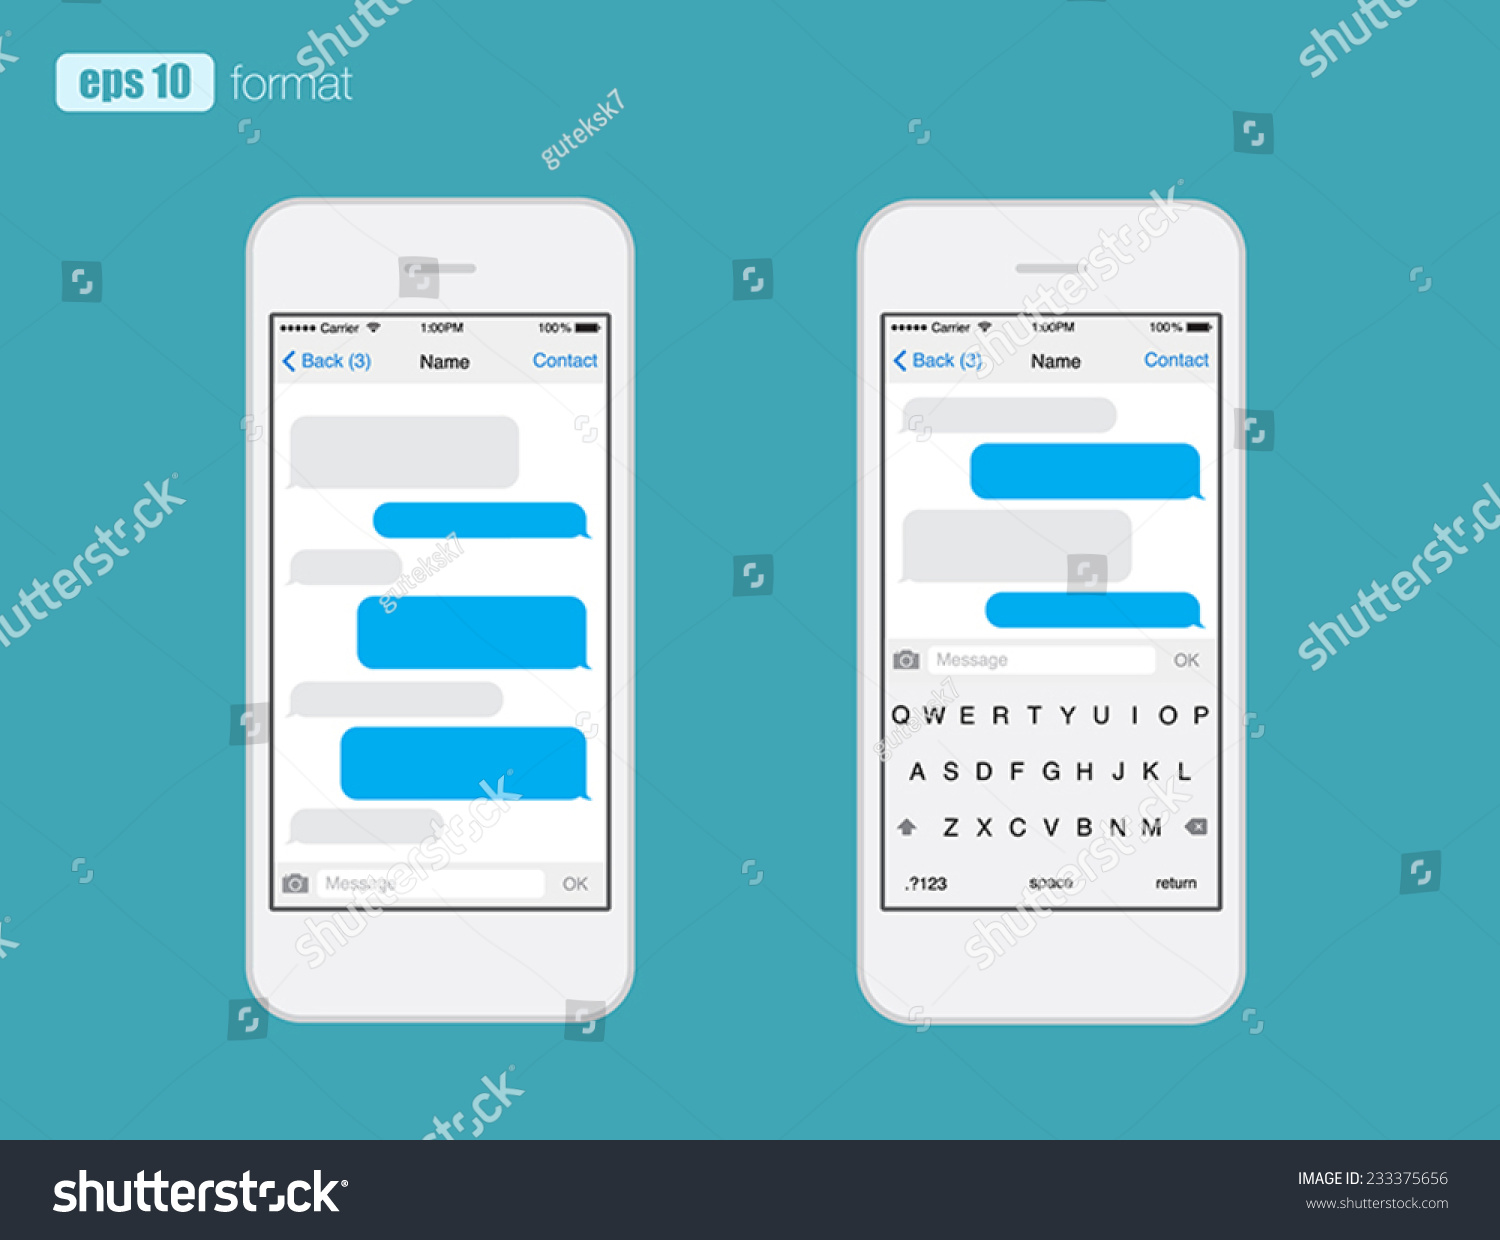 smart phone chatting sms template bubbles place your own text to the message clouds compose. Black Bedroom Furniture Sets. Home Design Ideas